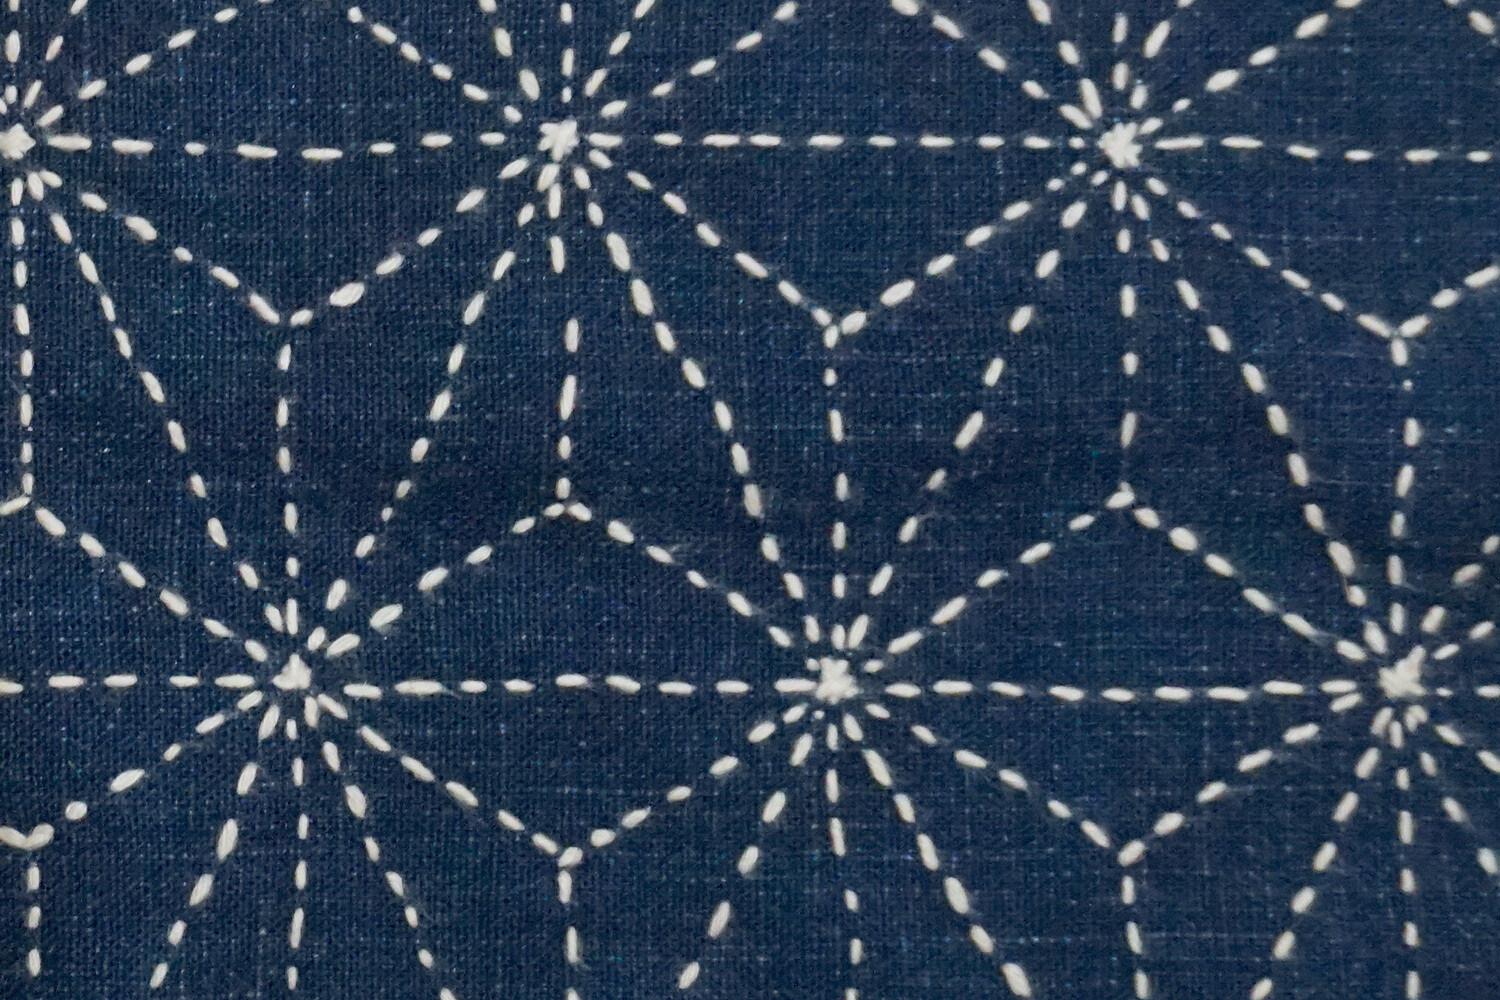 Asanoha Sashiko Stitched Fabric 081501 | Summer Sale Deal!